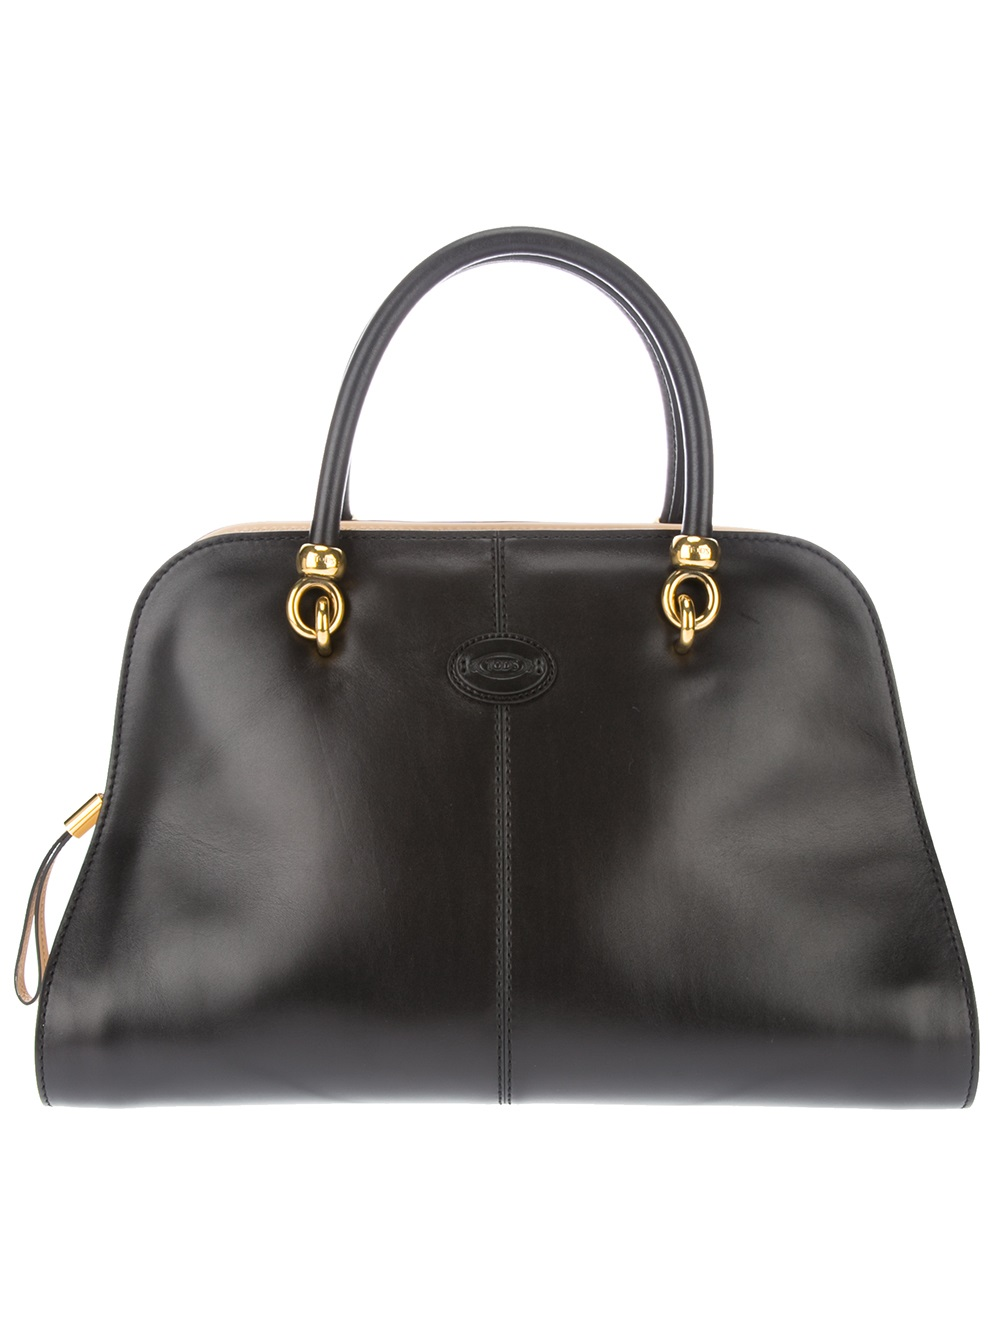 bbffd8a169 Tod's Sella Small Bowler Bag in Black - Lyst